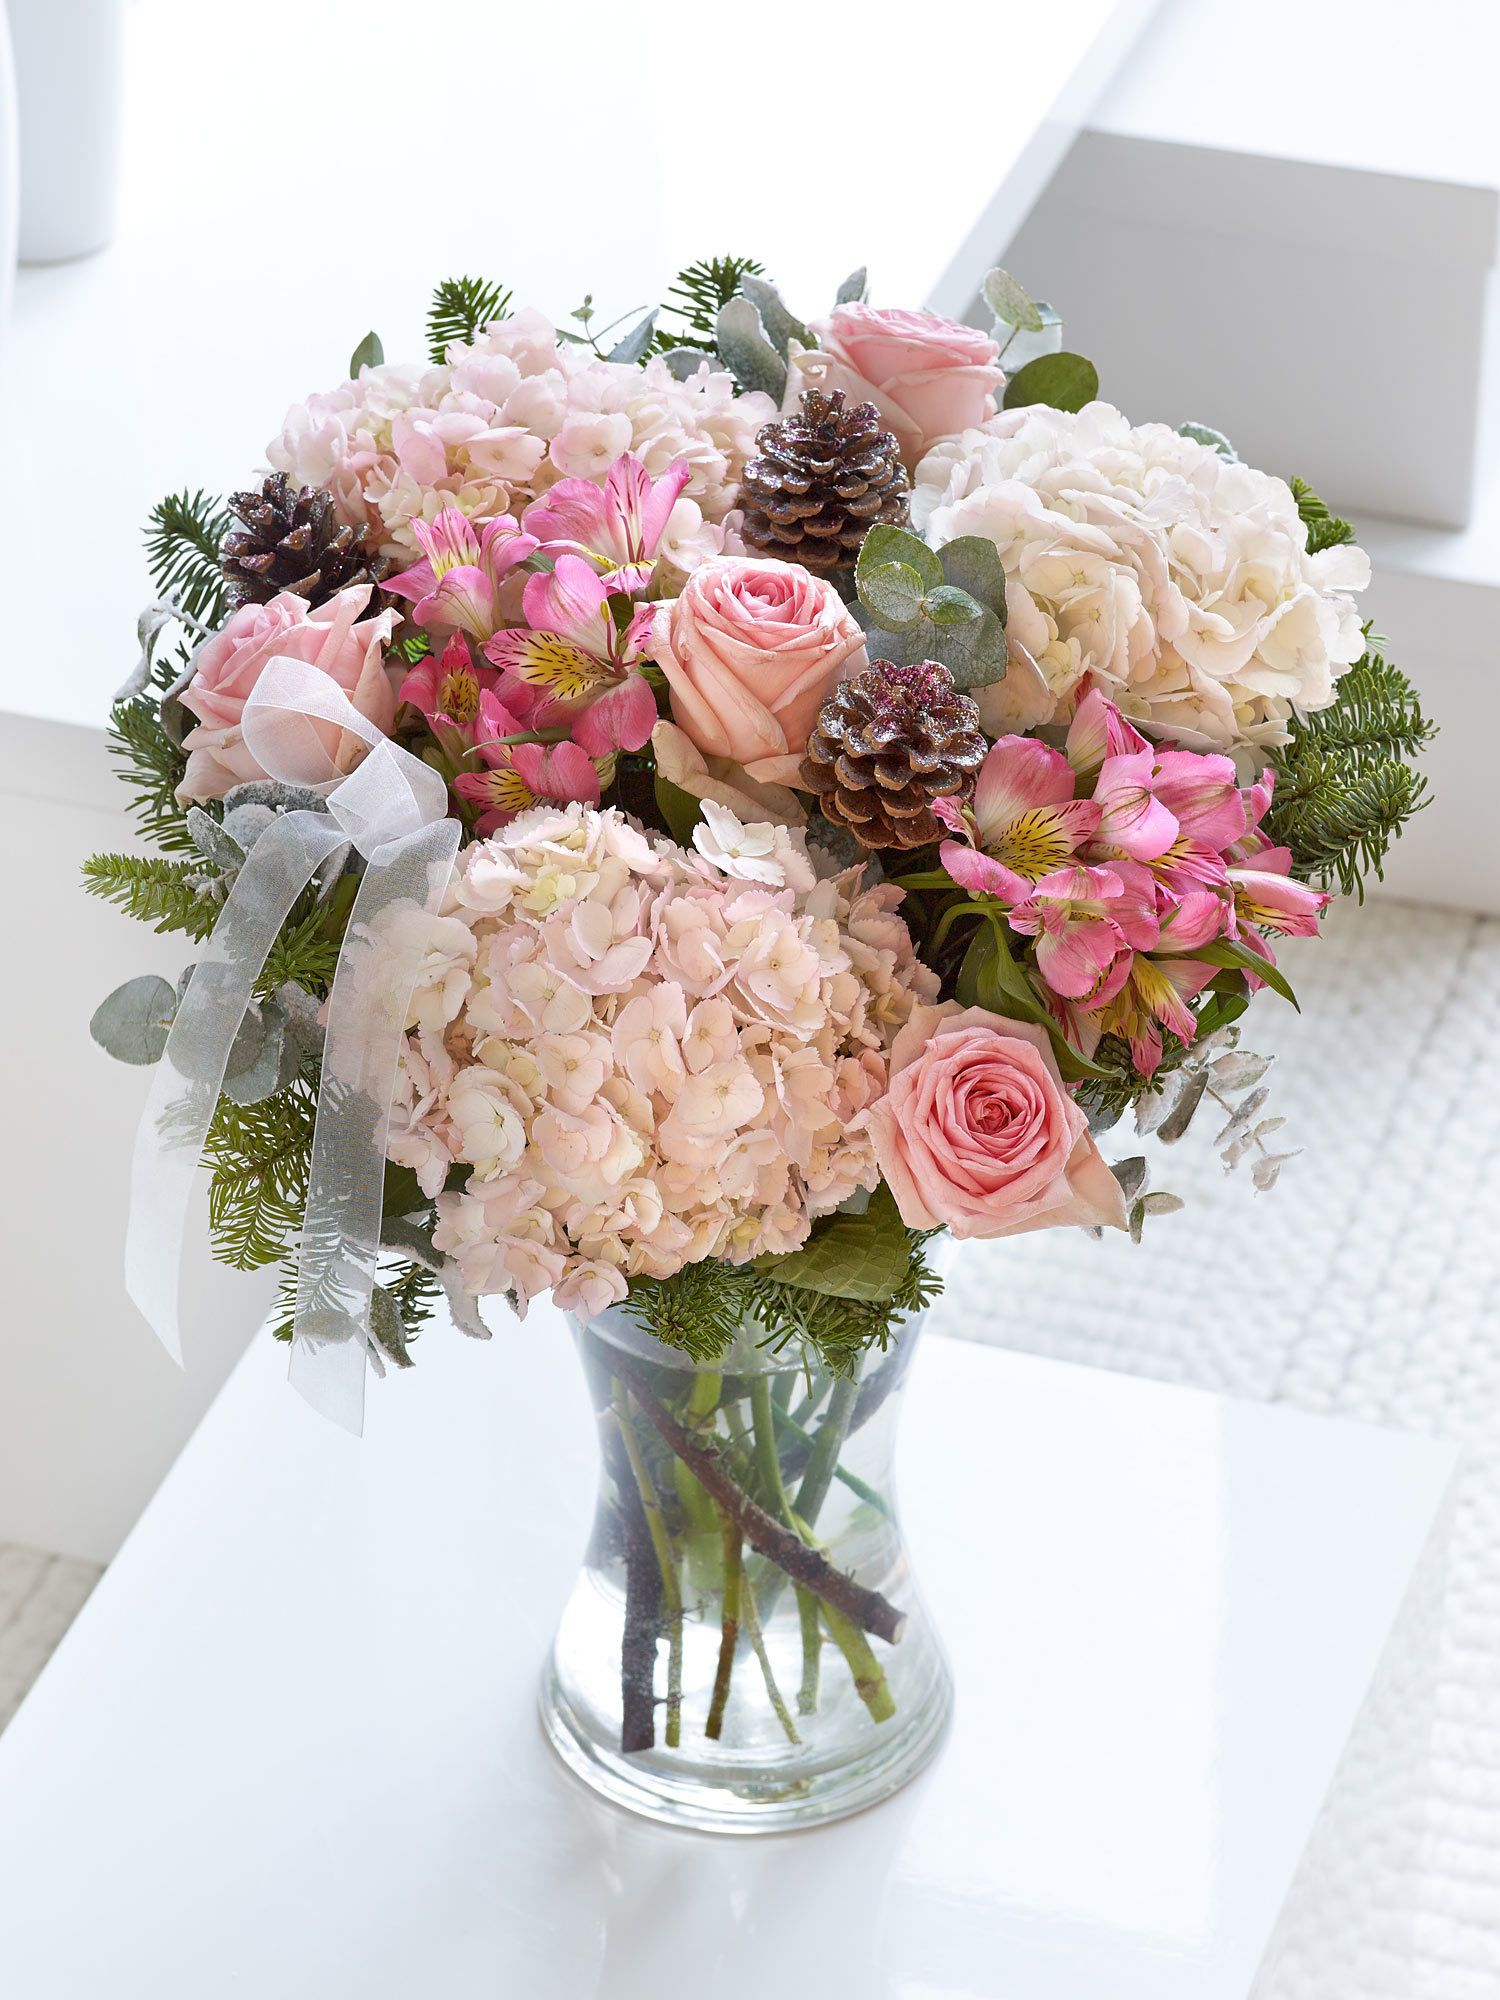 Pink Shades Of Flowers Work Equally As Well For Christmas This Exquisite Arrangement Features Hydrangea Alstroemeria And Sweet Dolomite Roses With